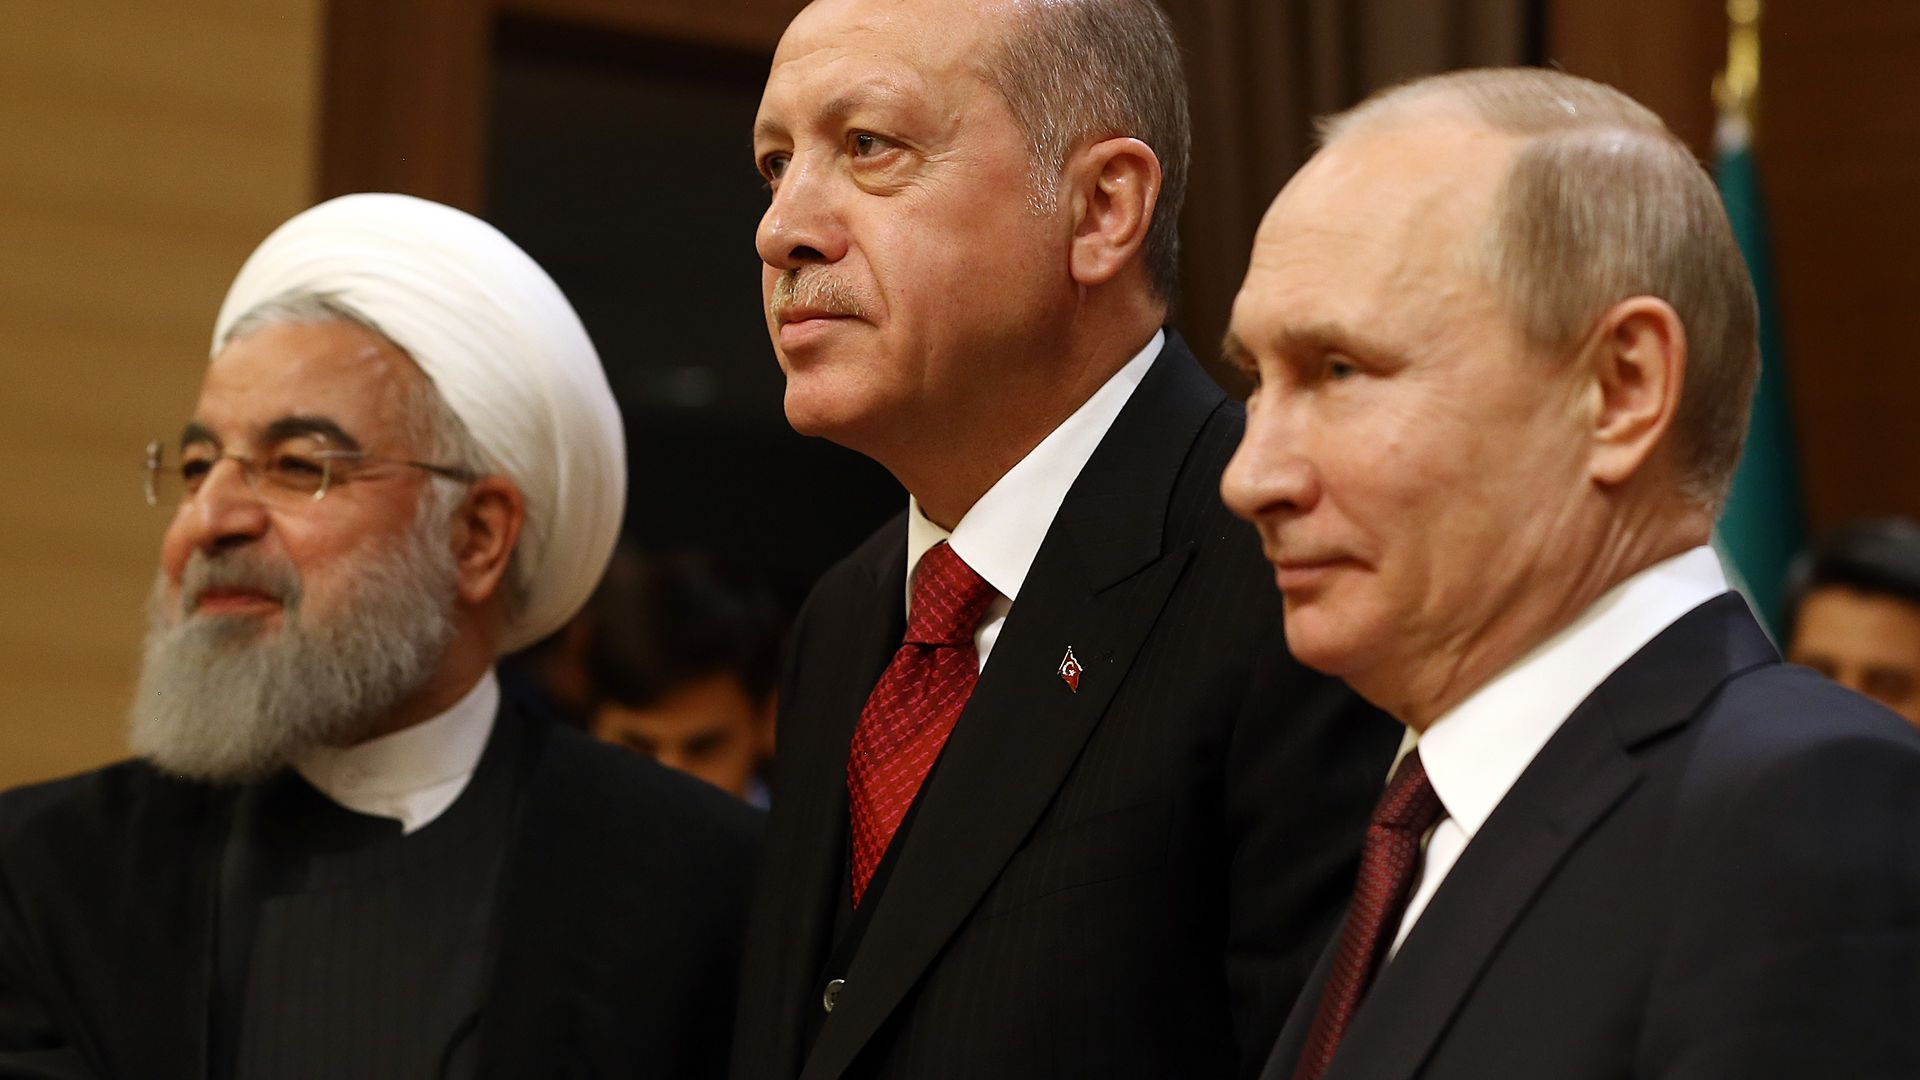 NEW TURKEY AND ITS NEW ALLIES